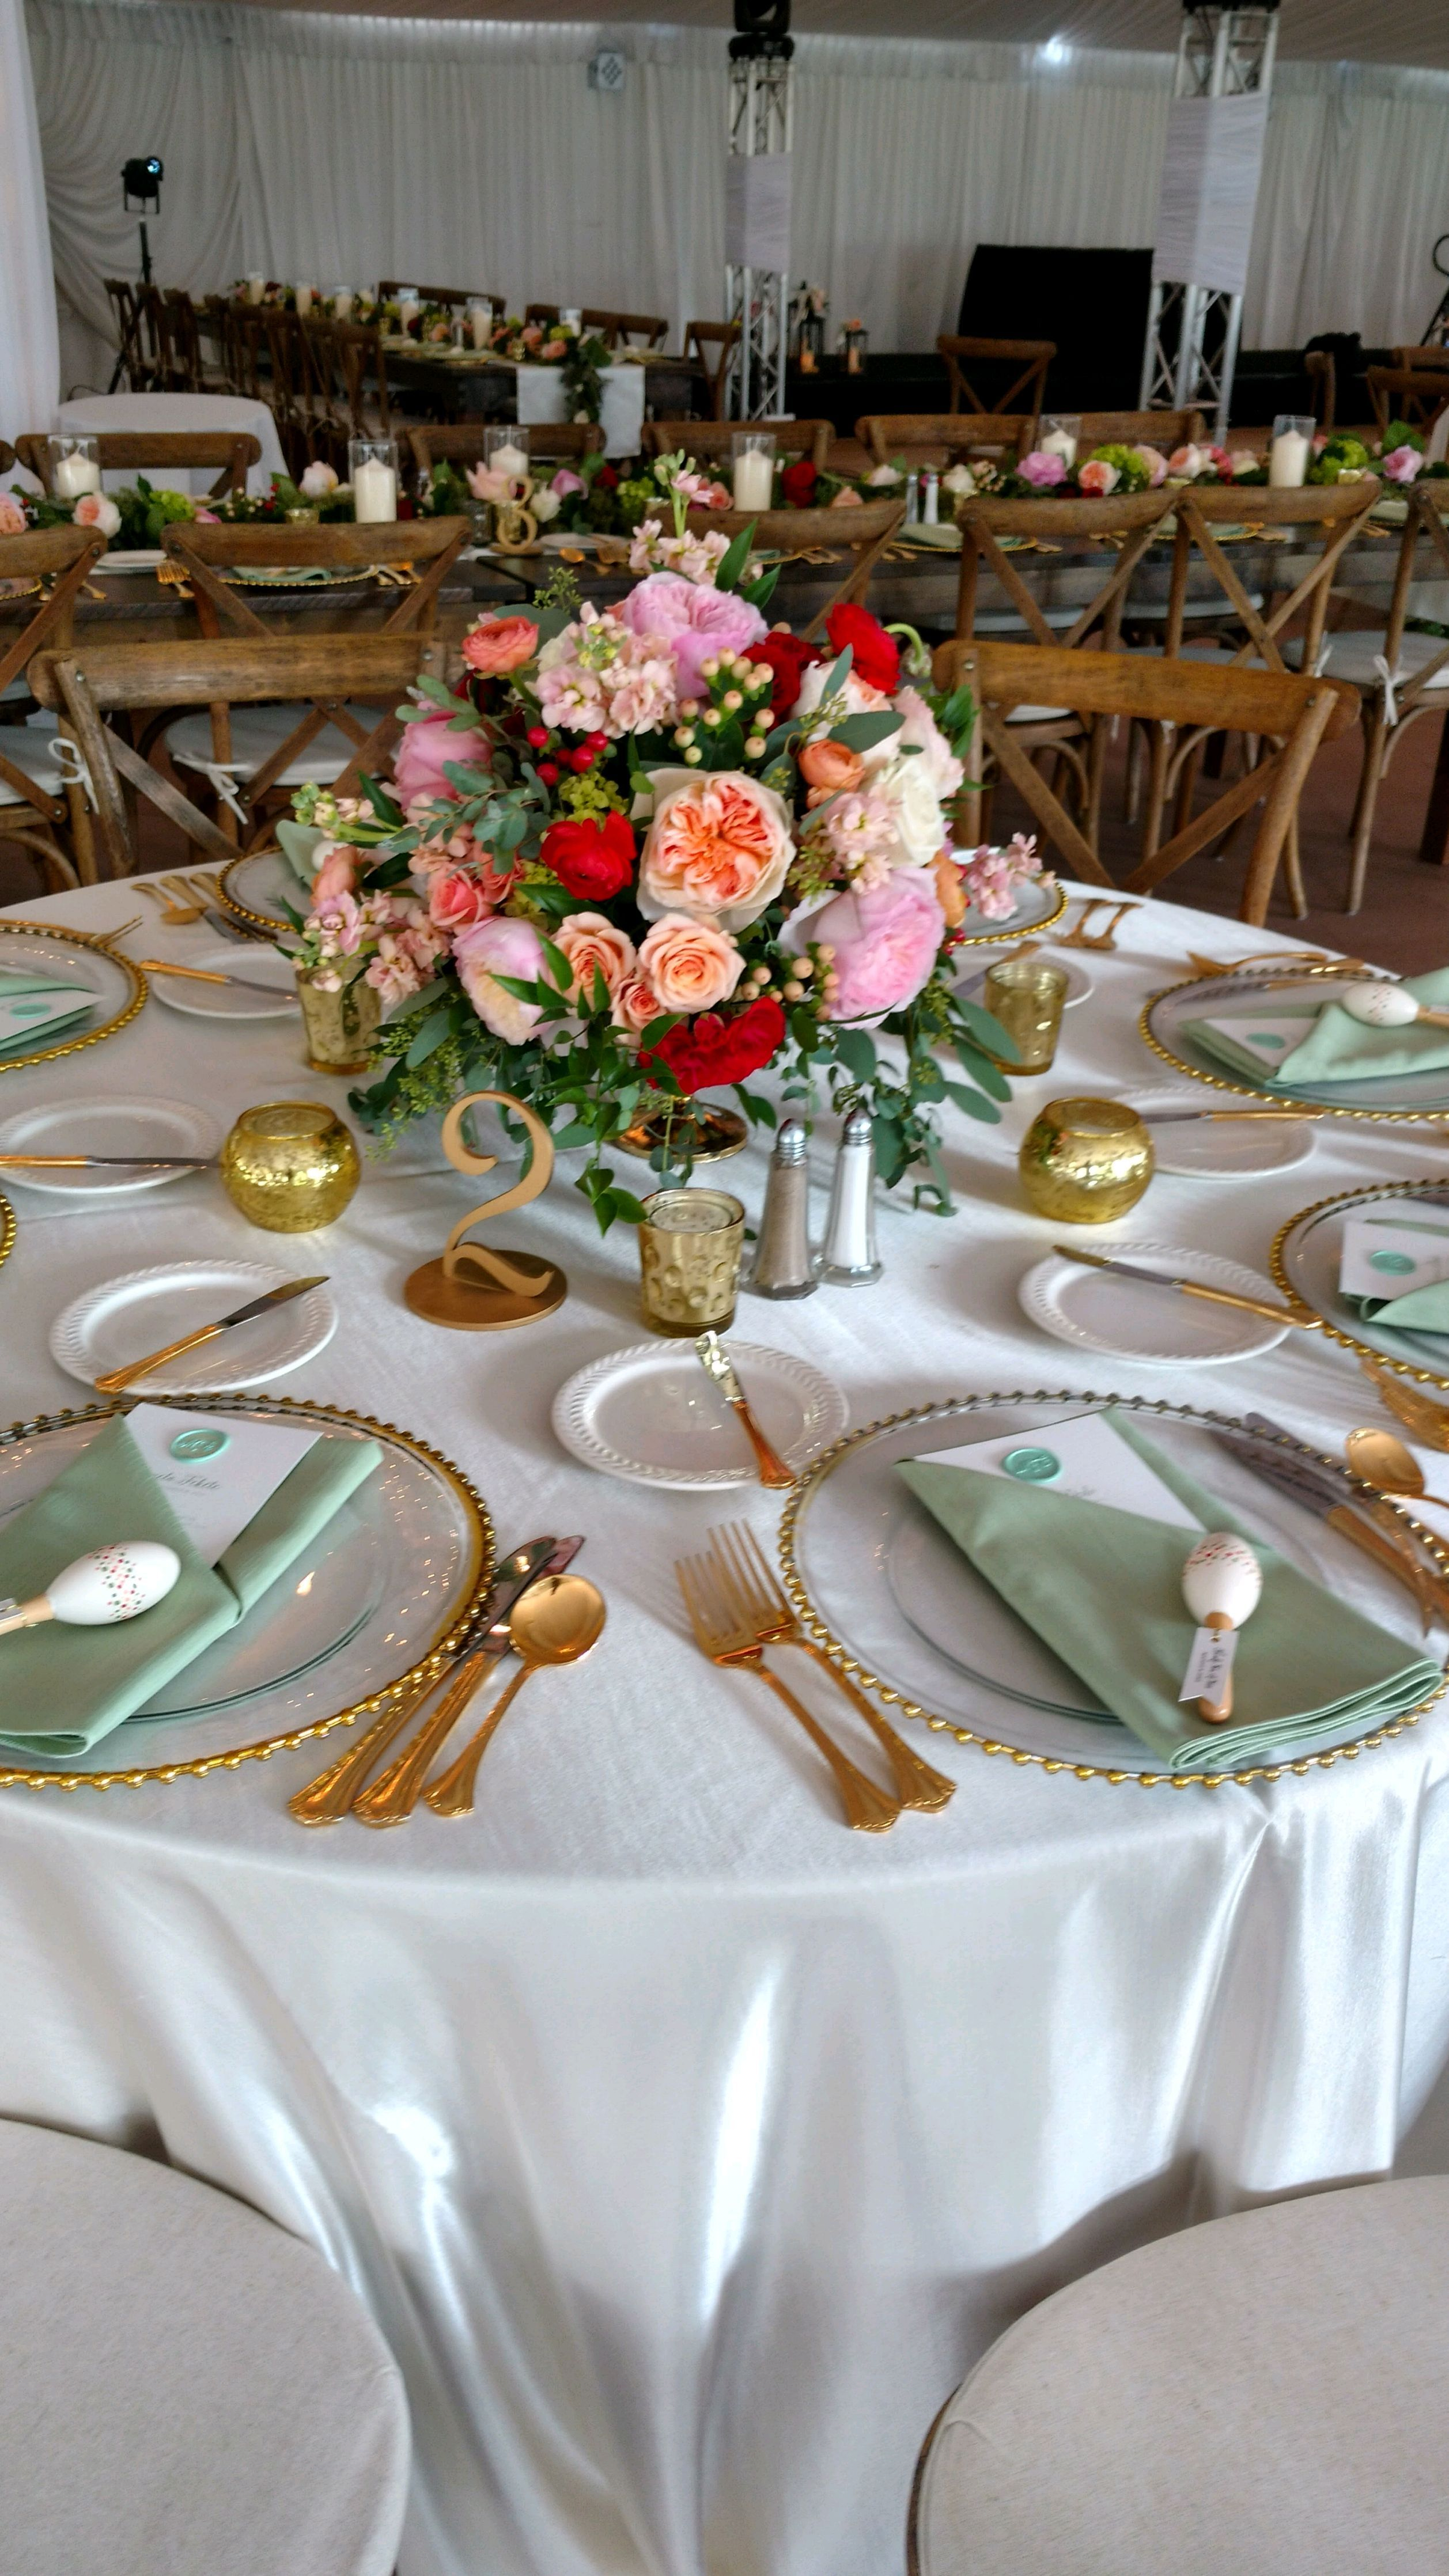 Garden event decor  A colorful table setting in Meadow Brook Hallus Garden Tent  Event